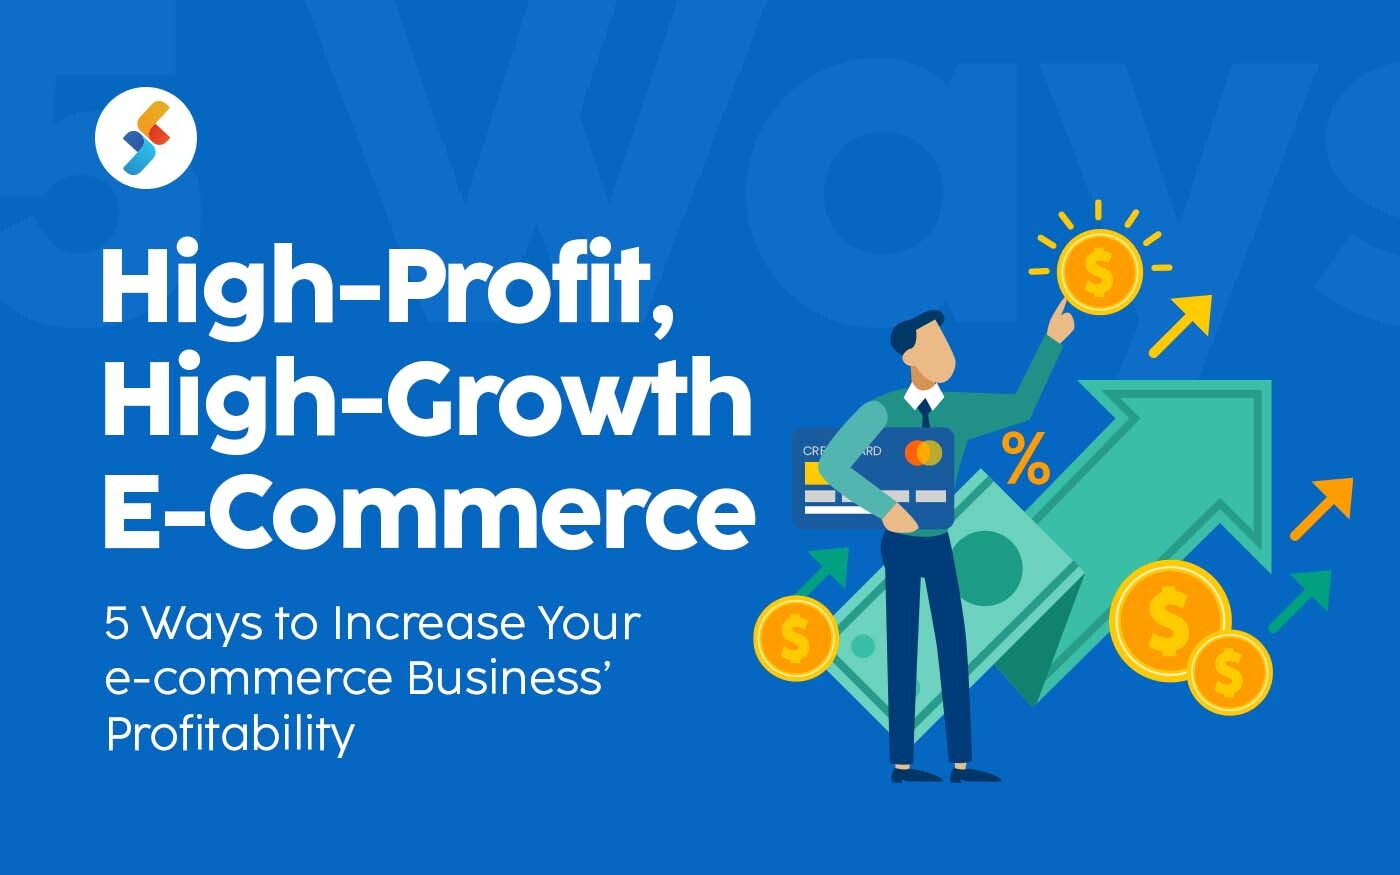 High-Profit, High-Growth E-Commerce: 5 Ways to Increase the Profitability of Your E-commerce Business